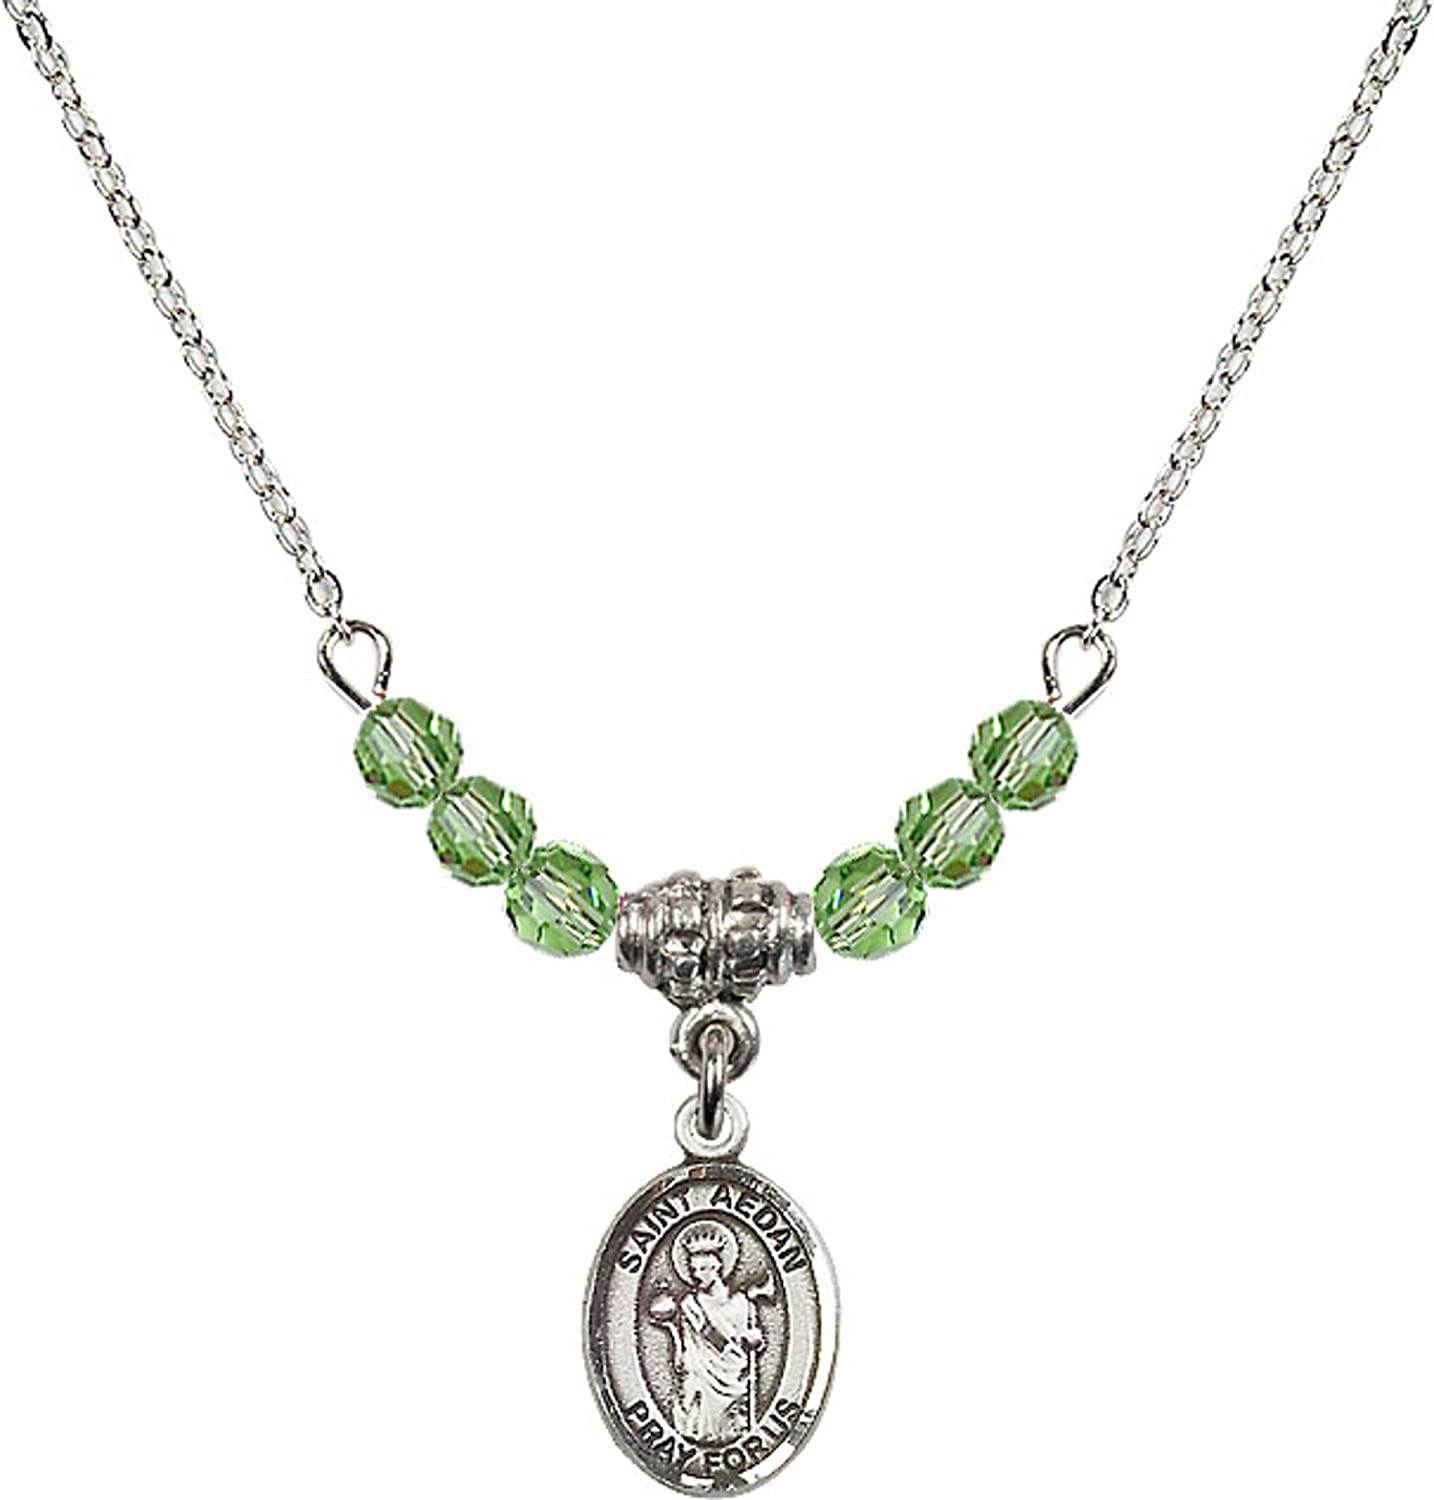 Bonyak Jewelry 18 Inch Rhodium Plated Necklace w// 4mm Green August Birth Month Stone Beads and Saint Aedan of Ferns Charm